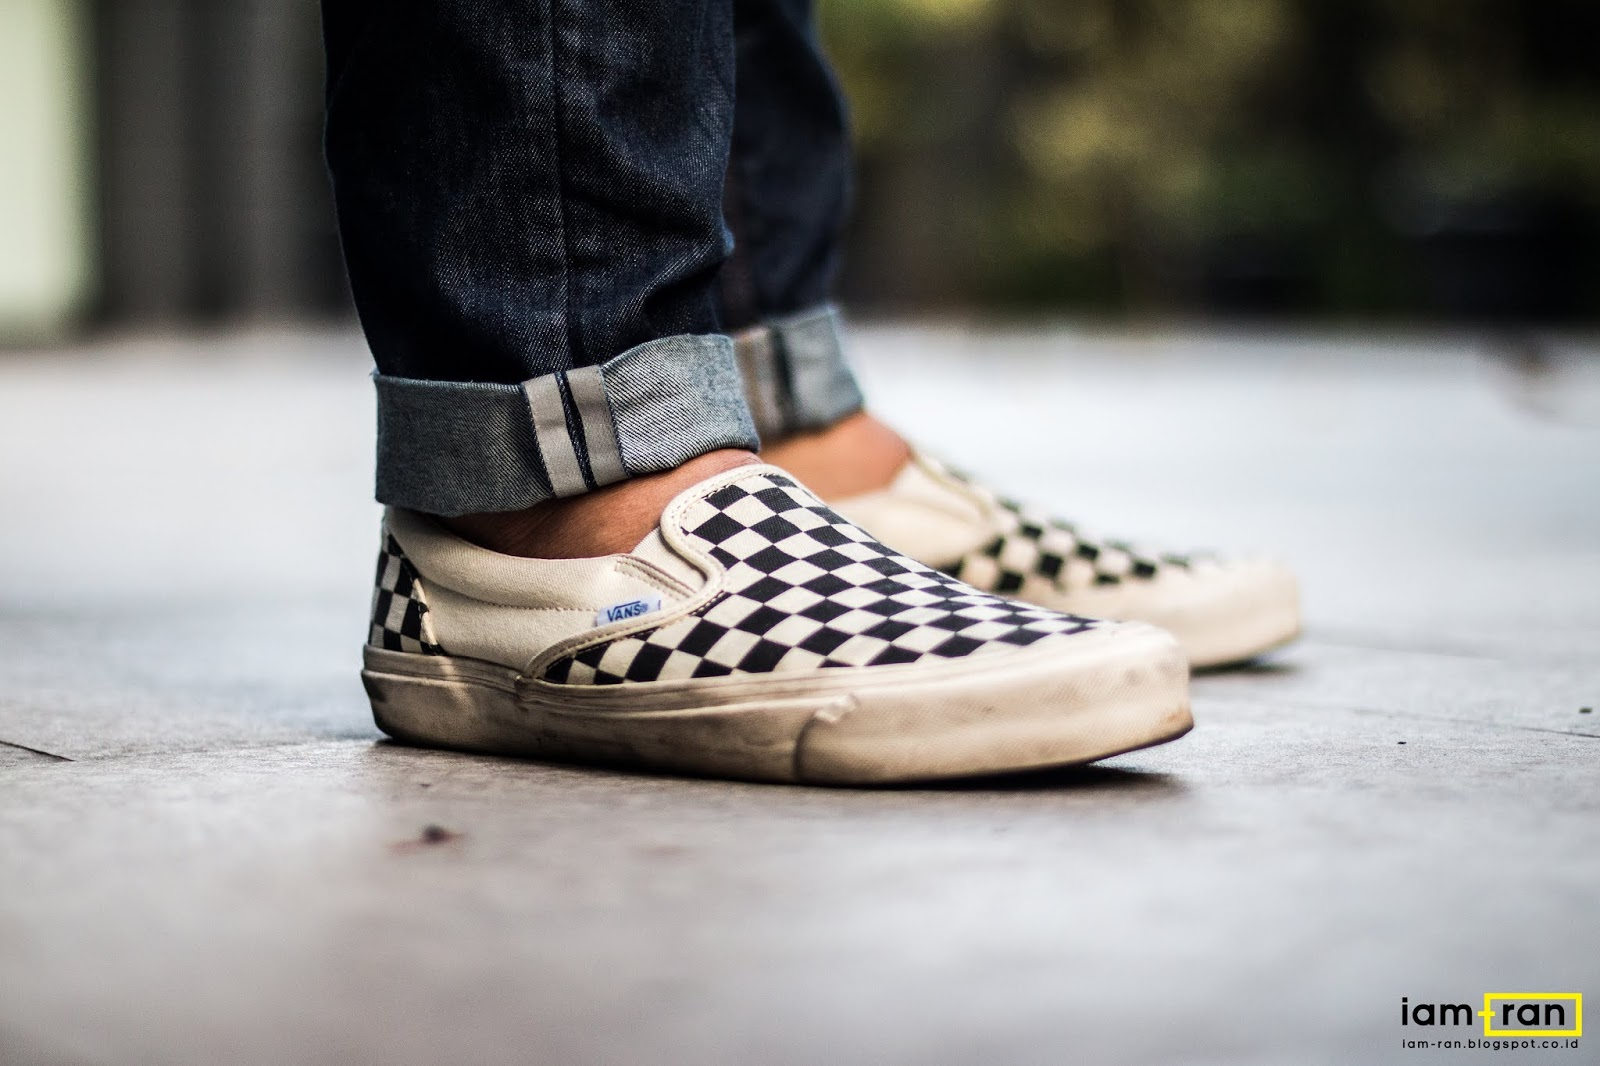 59af9da8f117d9 IAM-RAN  ON FEET   Ryan - Vans Slip on Vault OG Checkerboard